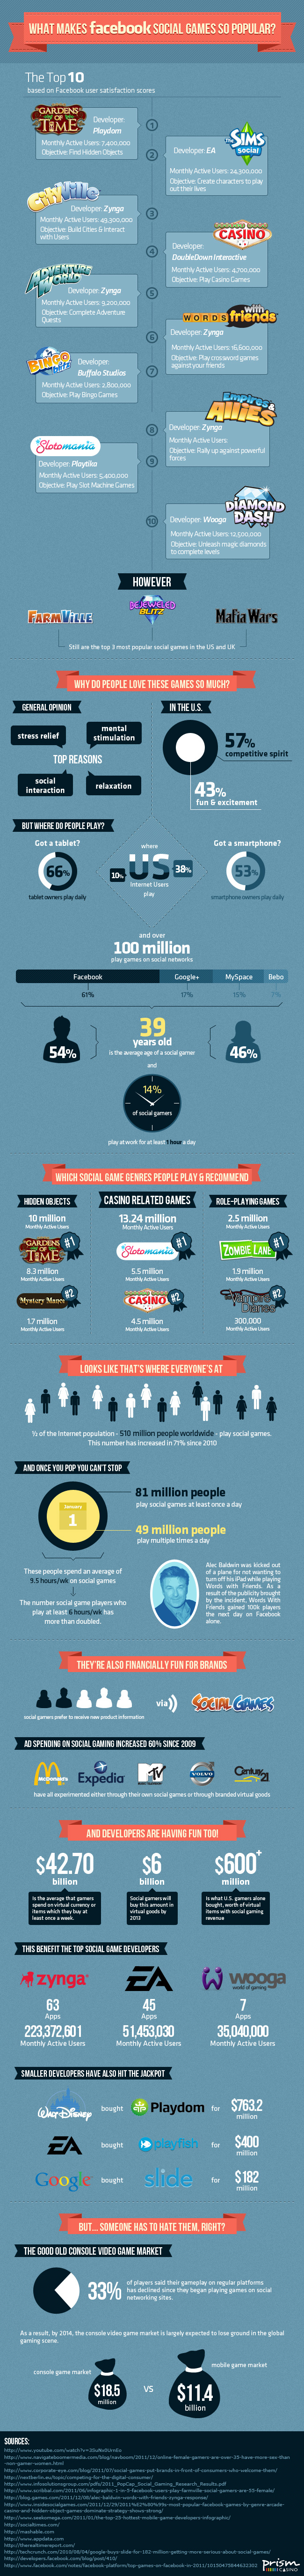 Social-gaming-infographic-1-19-2012